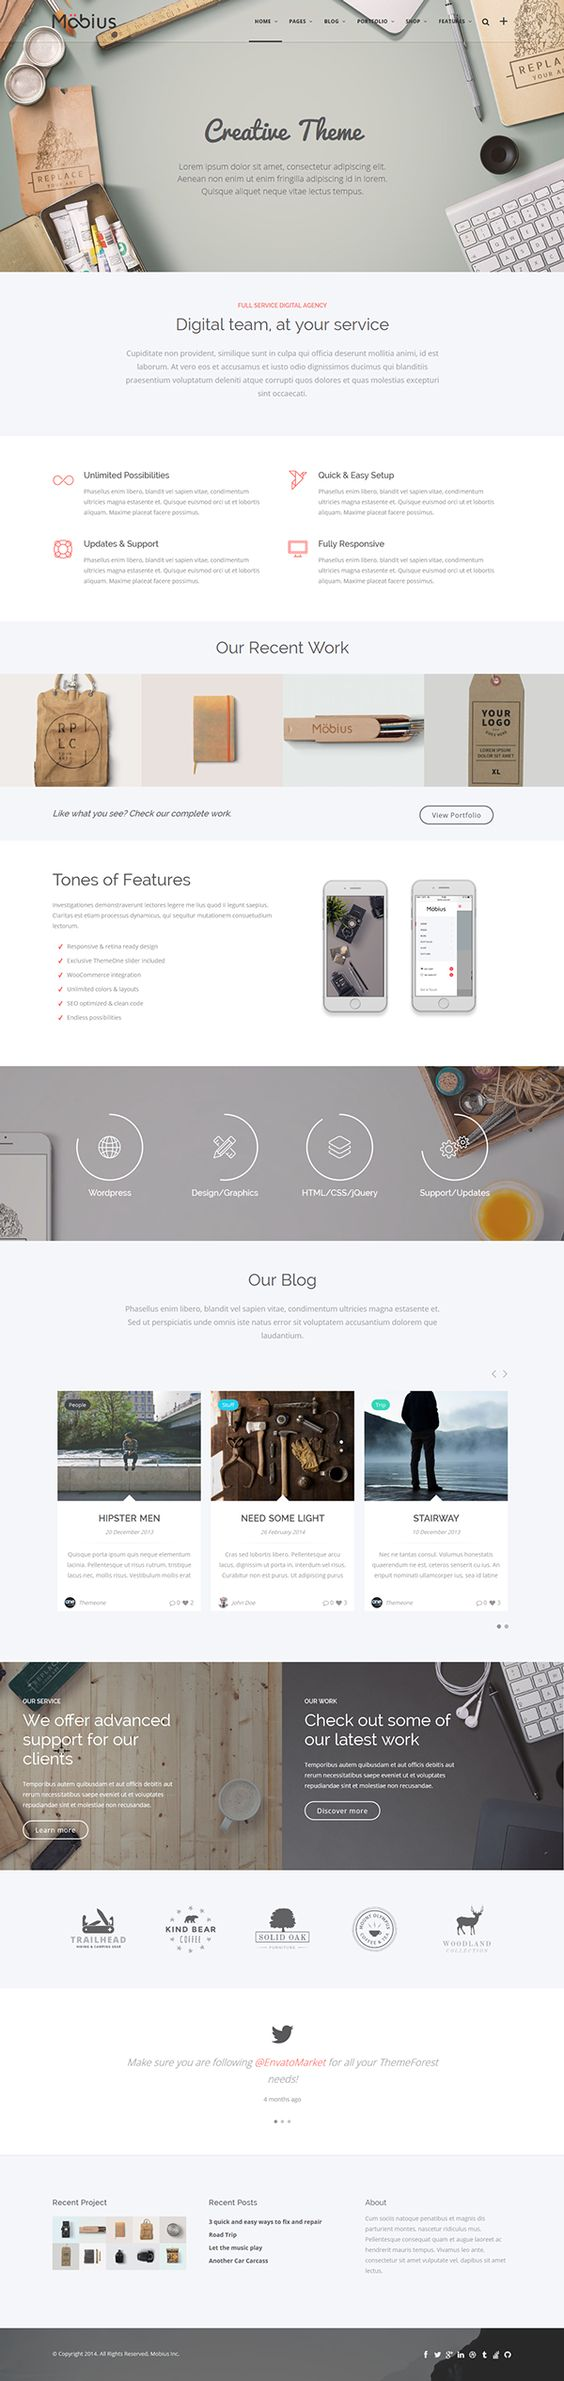 Feature a product/service at the top then its main selling points. Inspiration for emails, but great for landing pages. Mobius - Responsive Multi-Purpose WordPress Themew